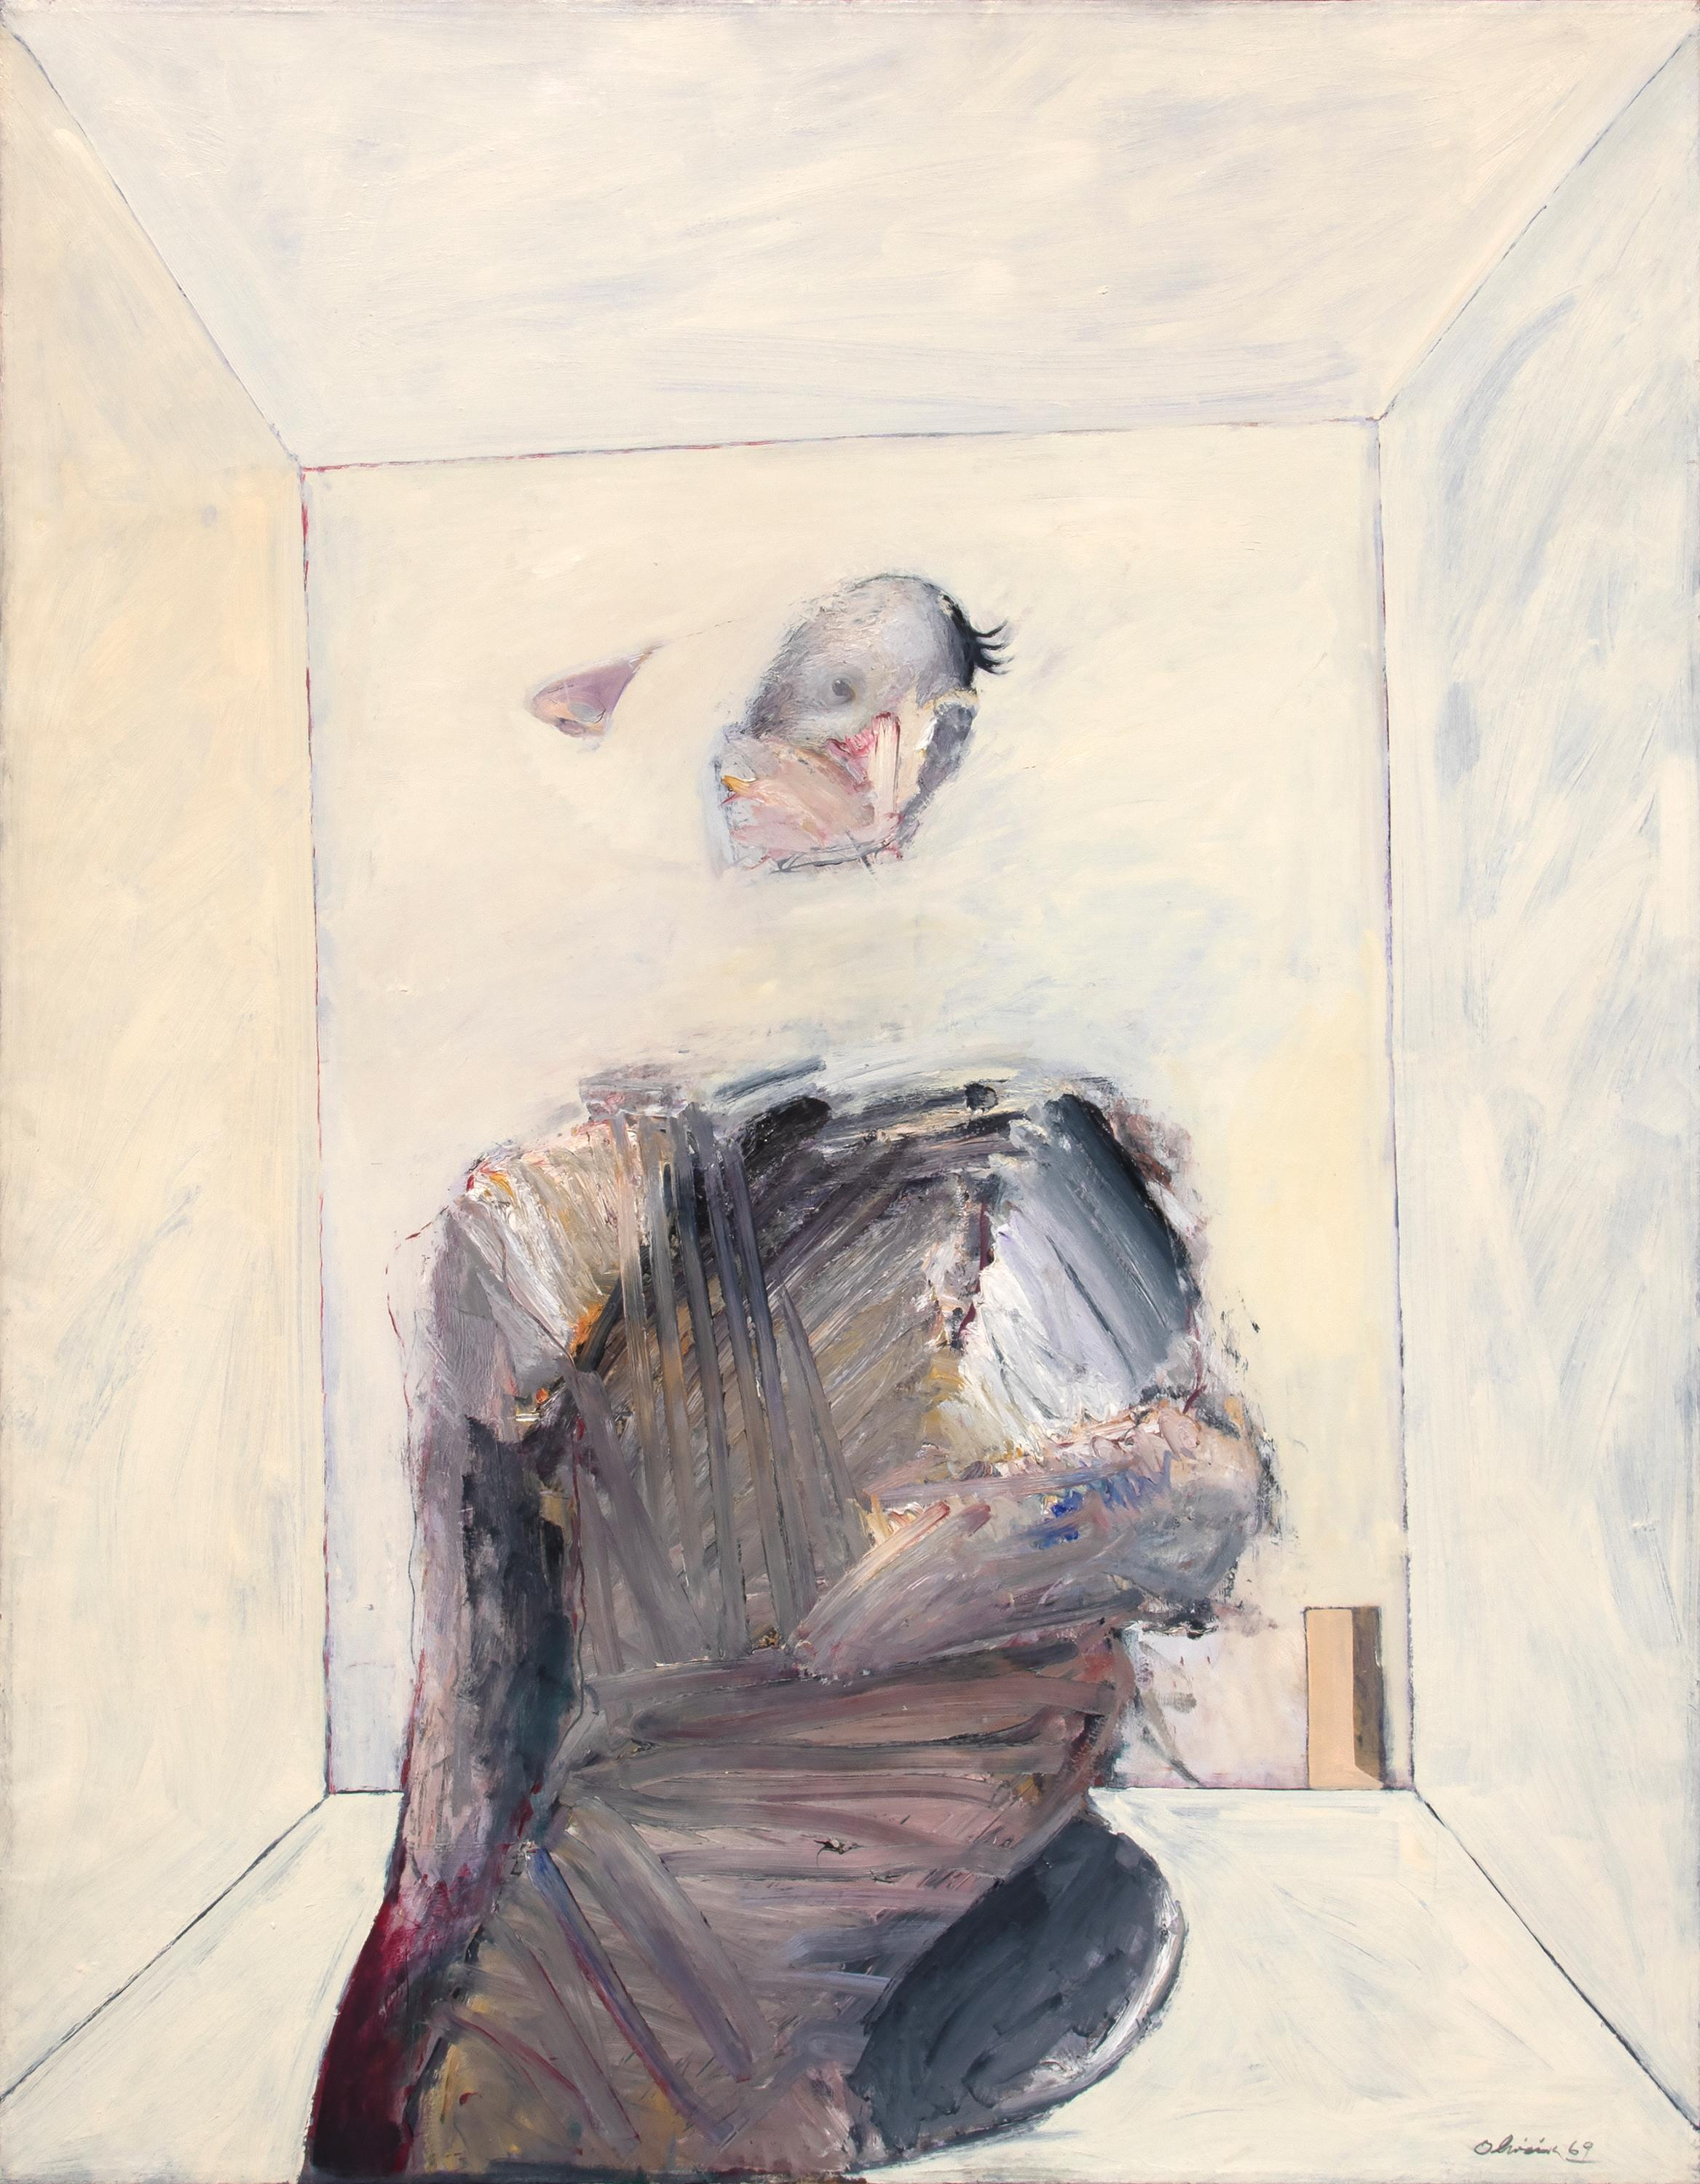 Seated Man in Room